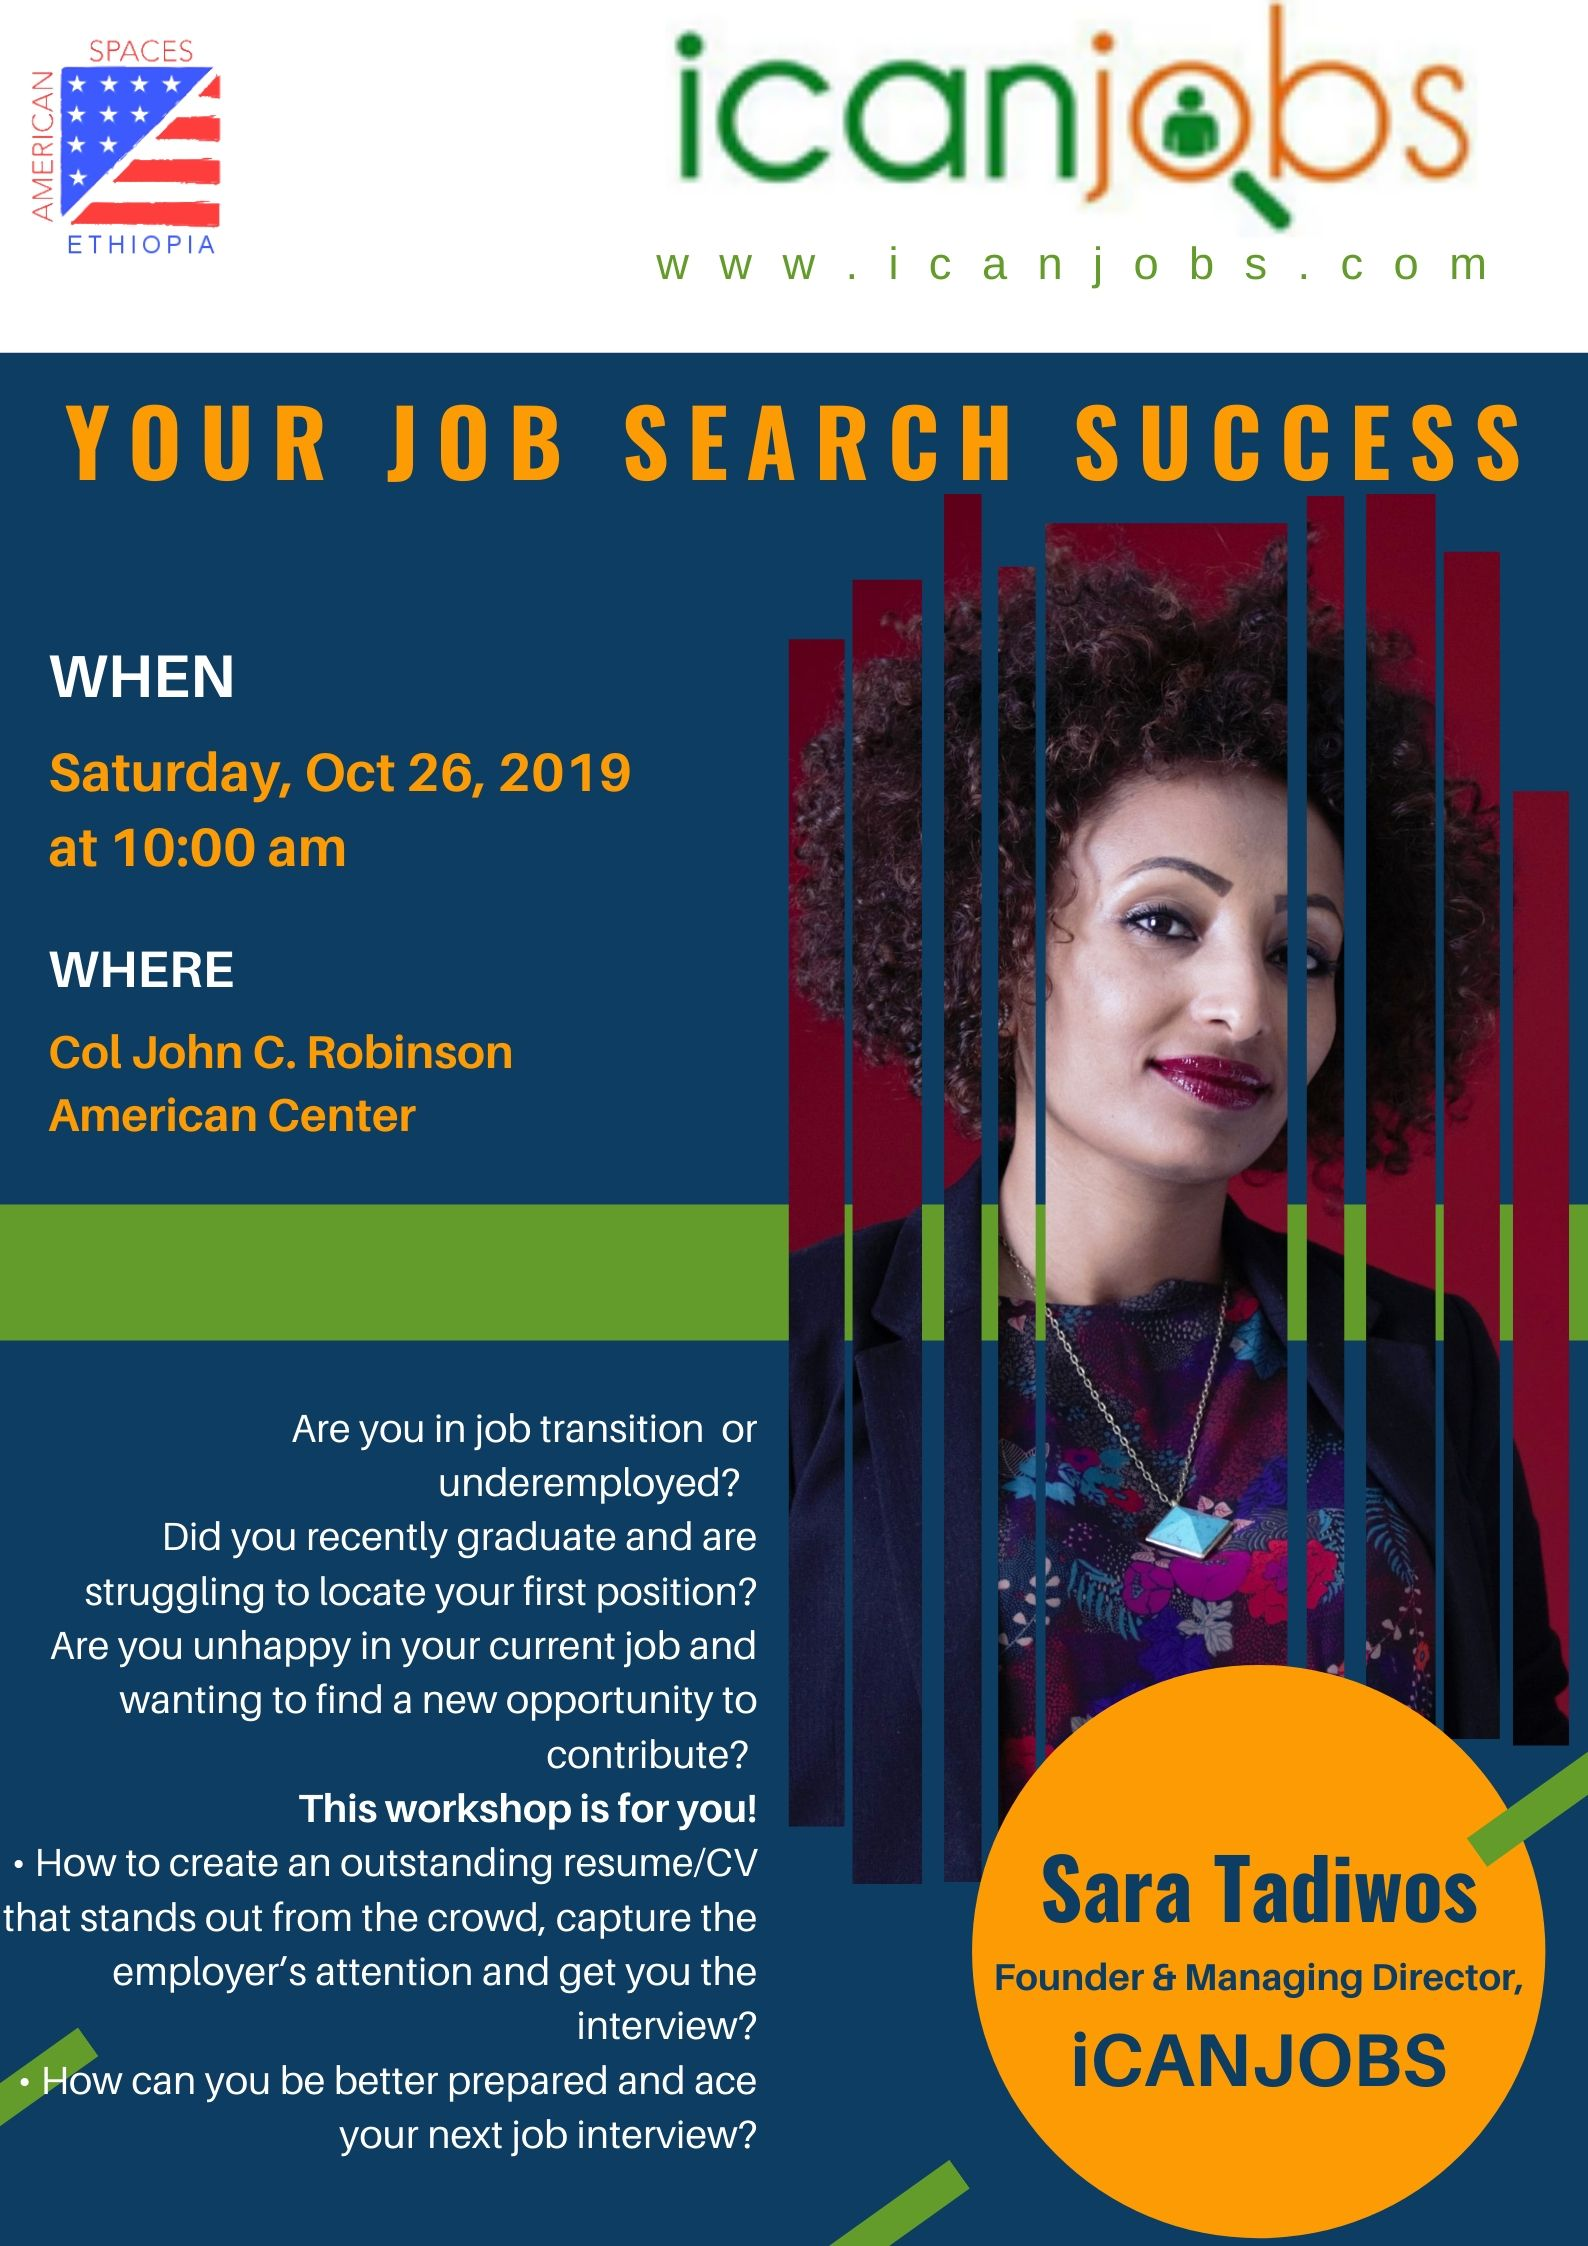 YOUR JOB SEARCH SUCCESS